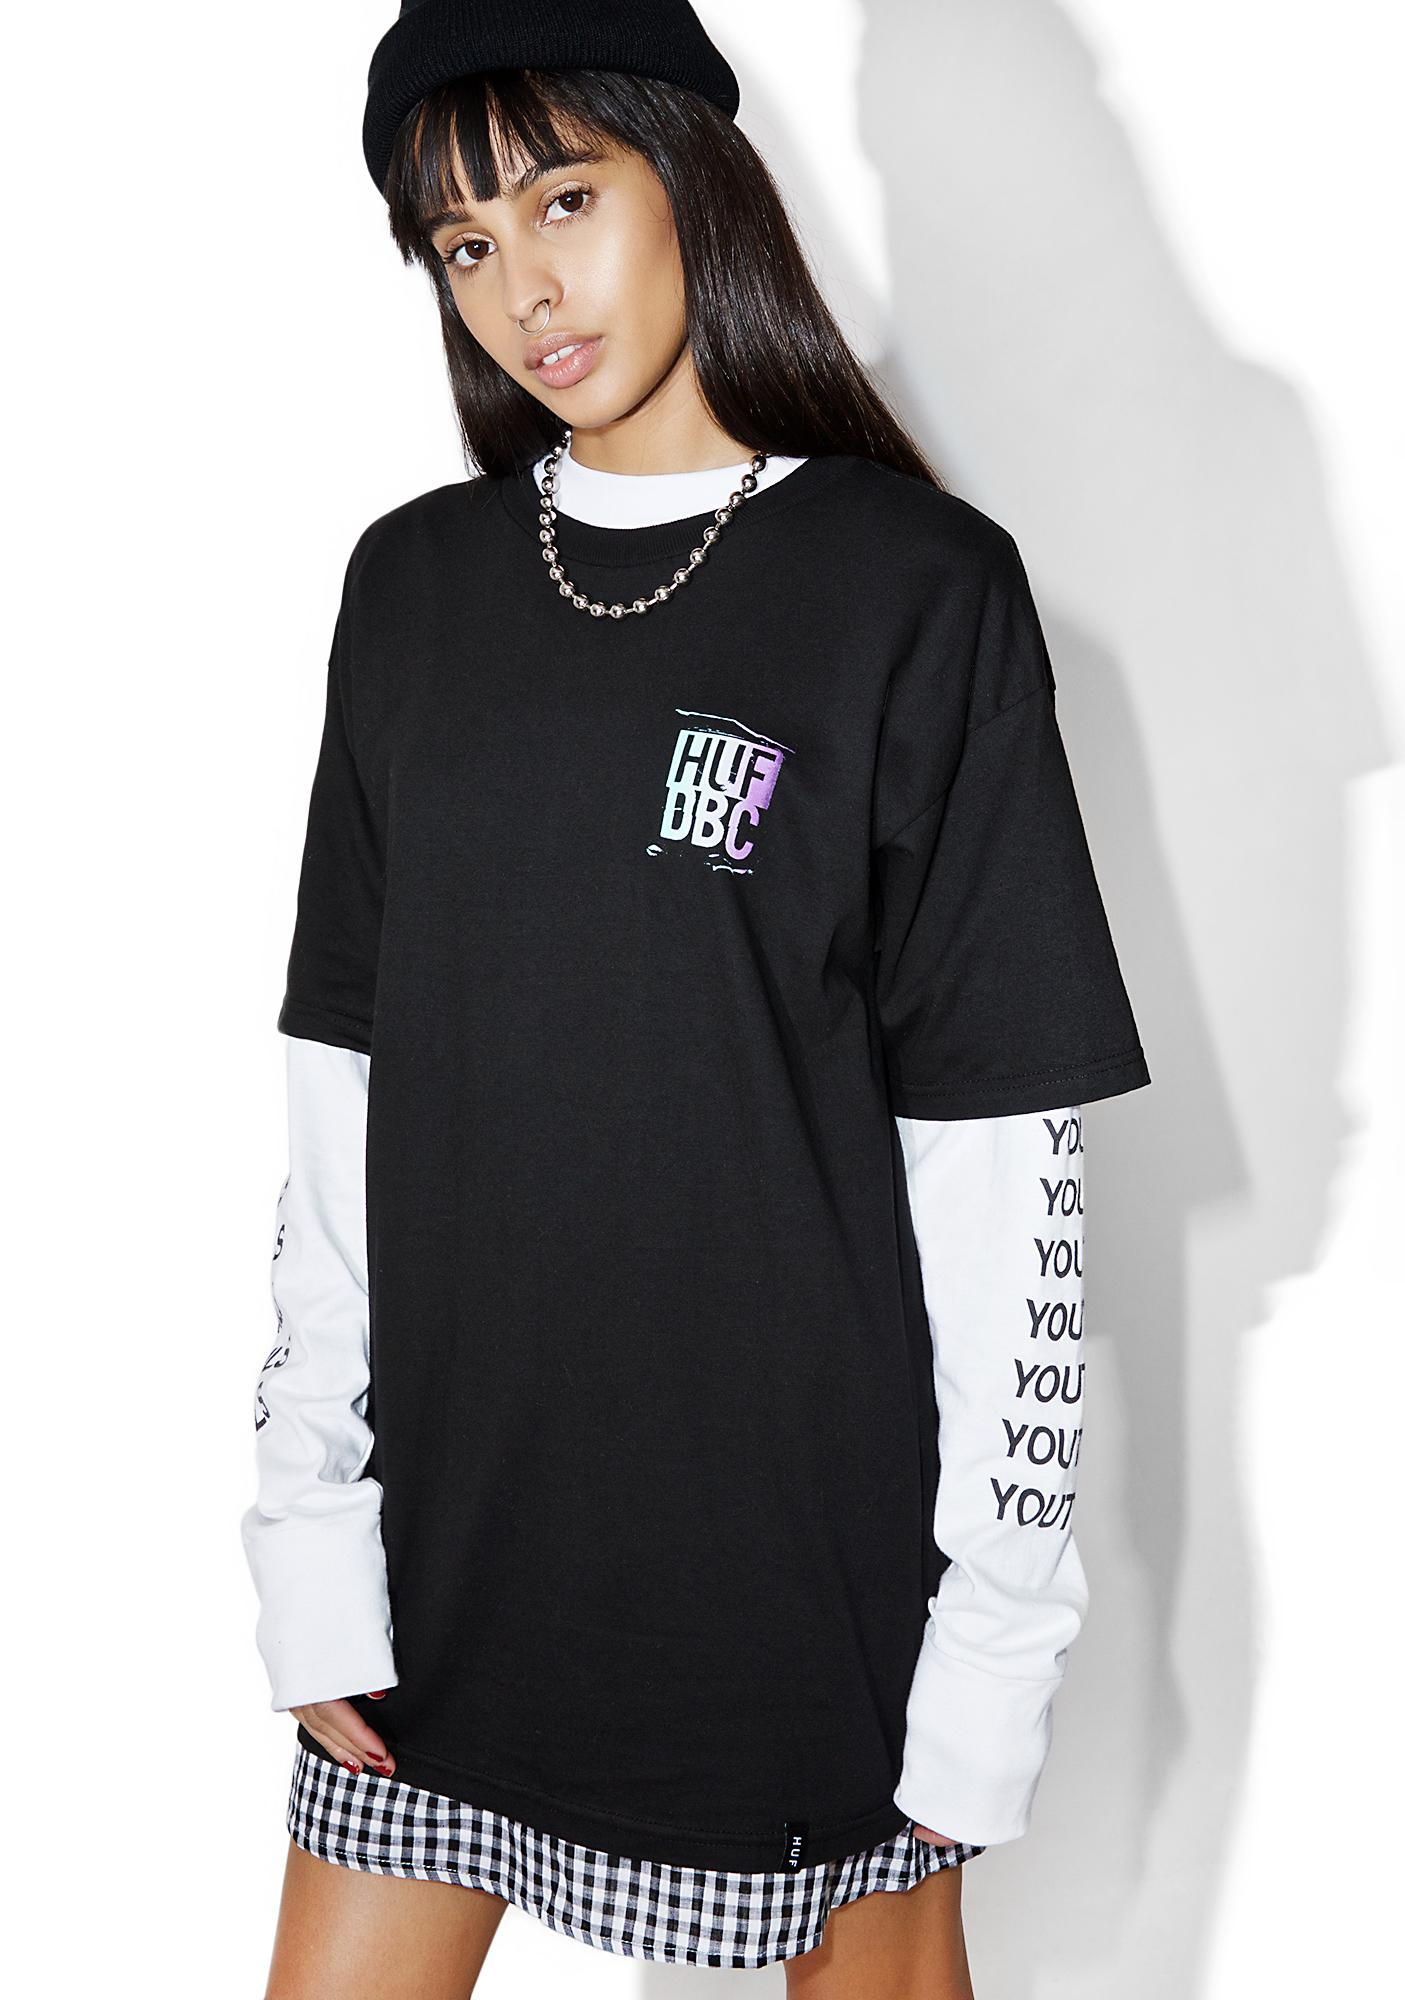 HUF DBC Gradient Quotes Tee